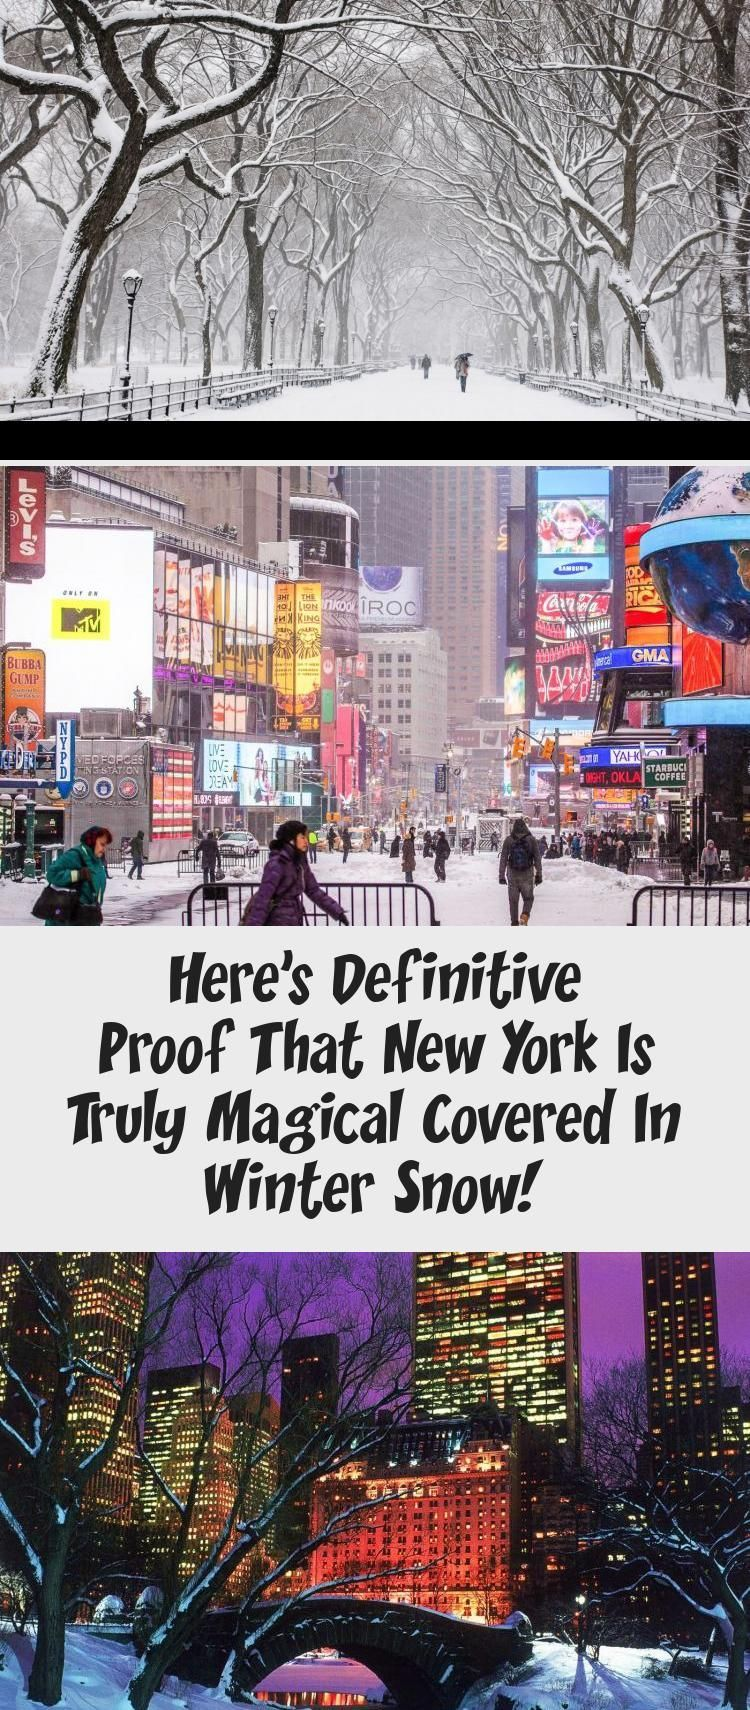 Heres Definitive Proof That New York Is Truly Magical Covered In Winter Snow